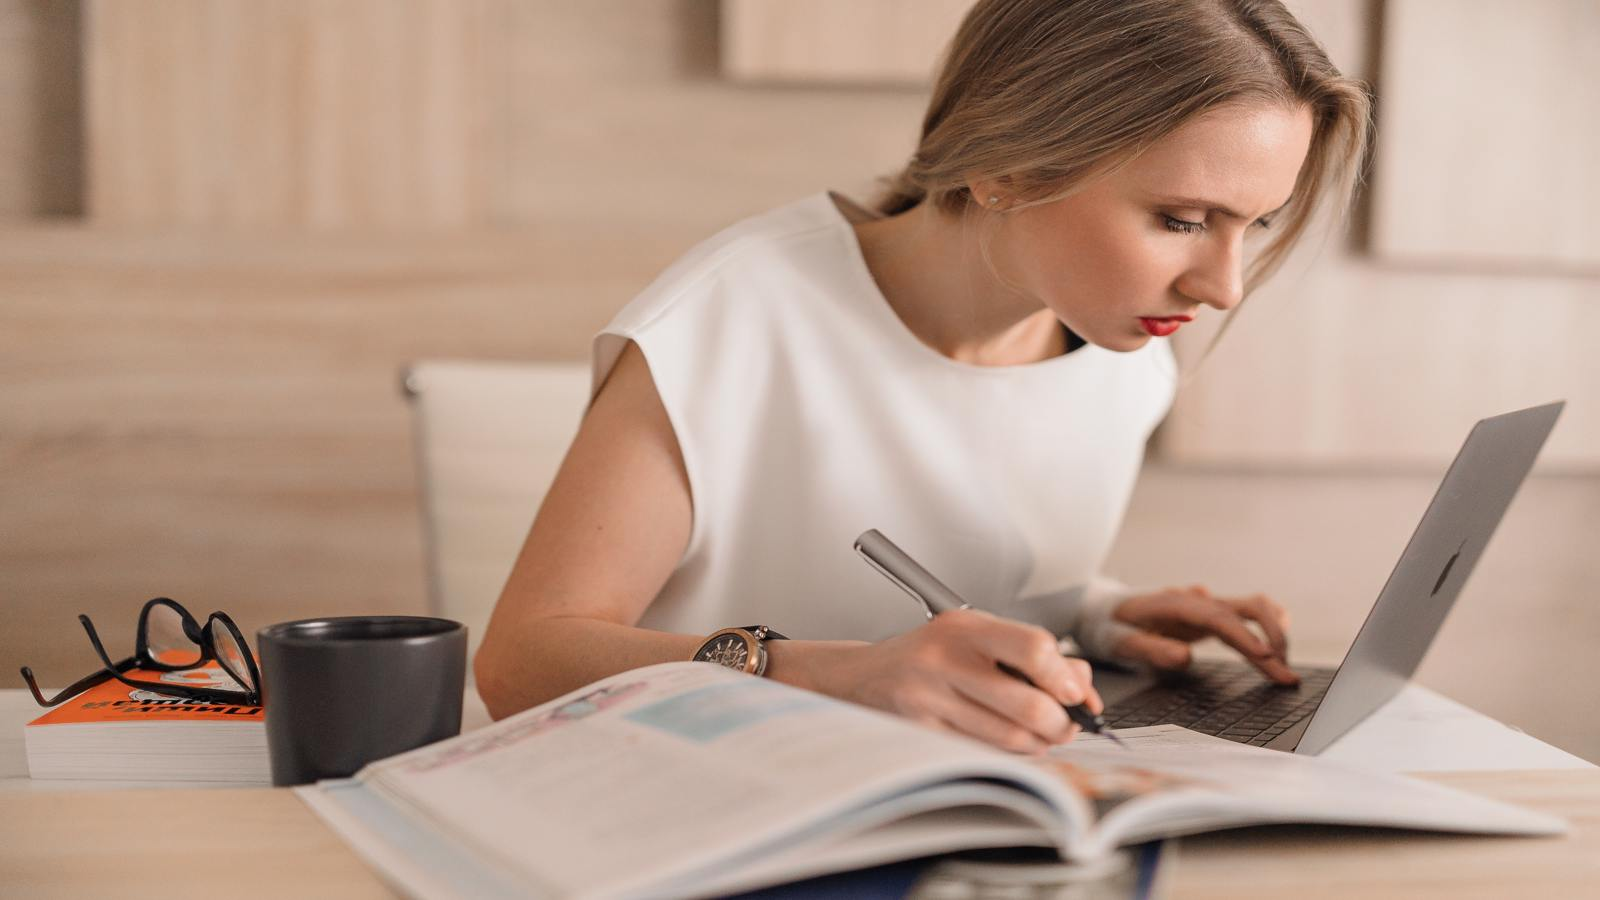 How to Find the Perfect Online Tutor: 4 Steps to the Language Teacher of Your Dreams